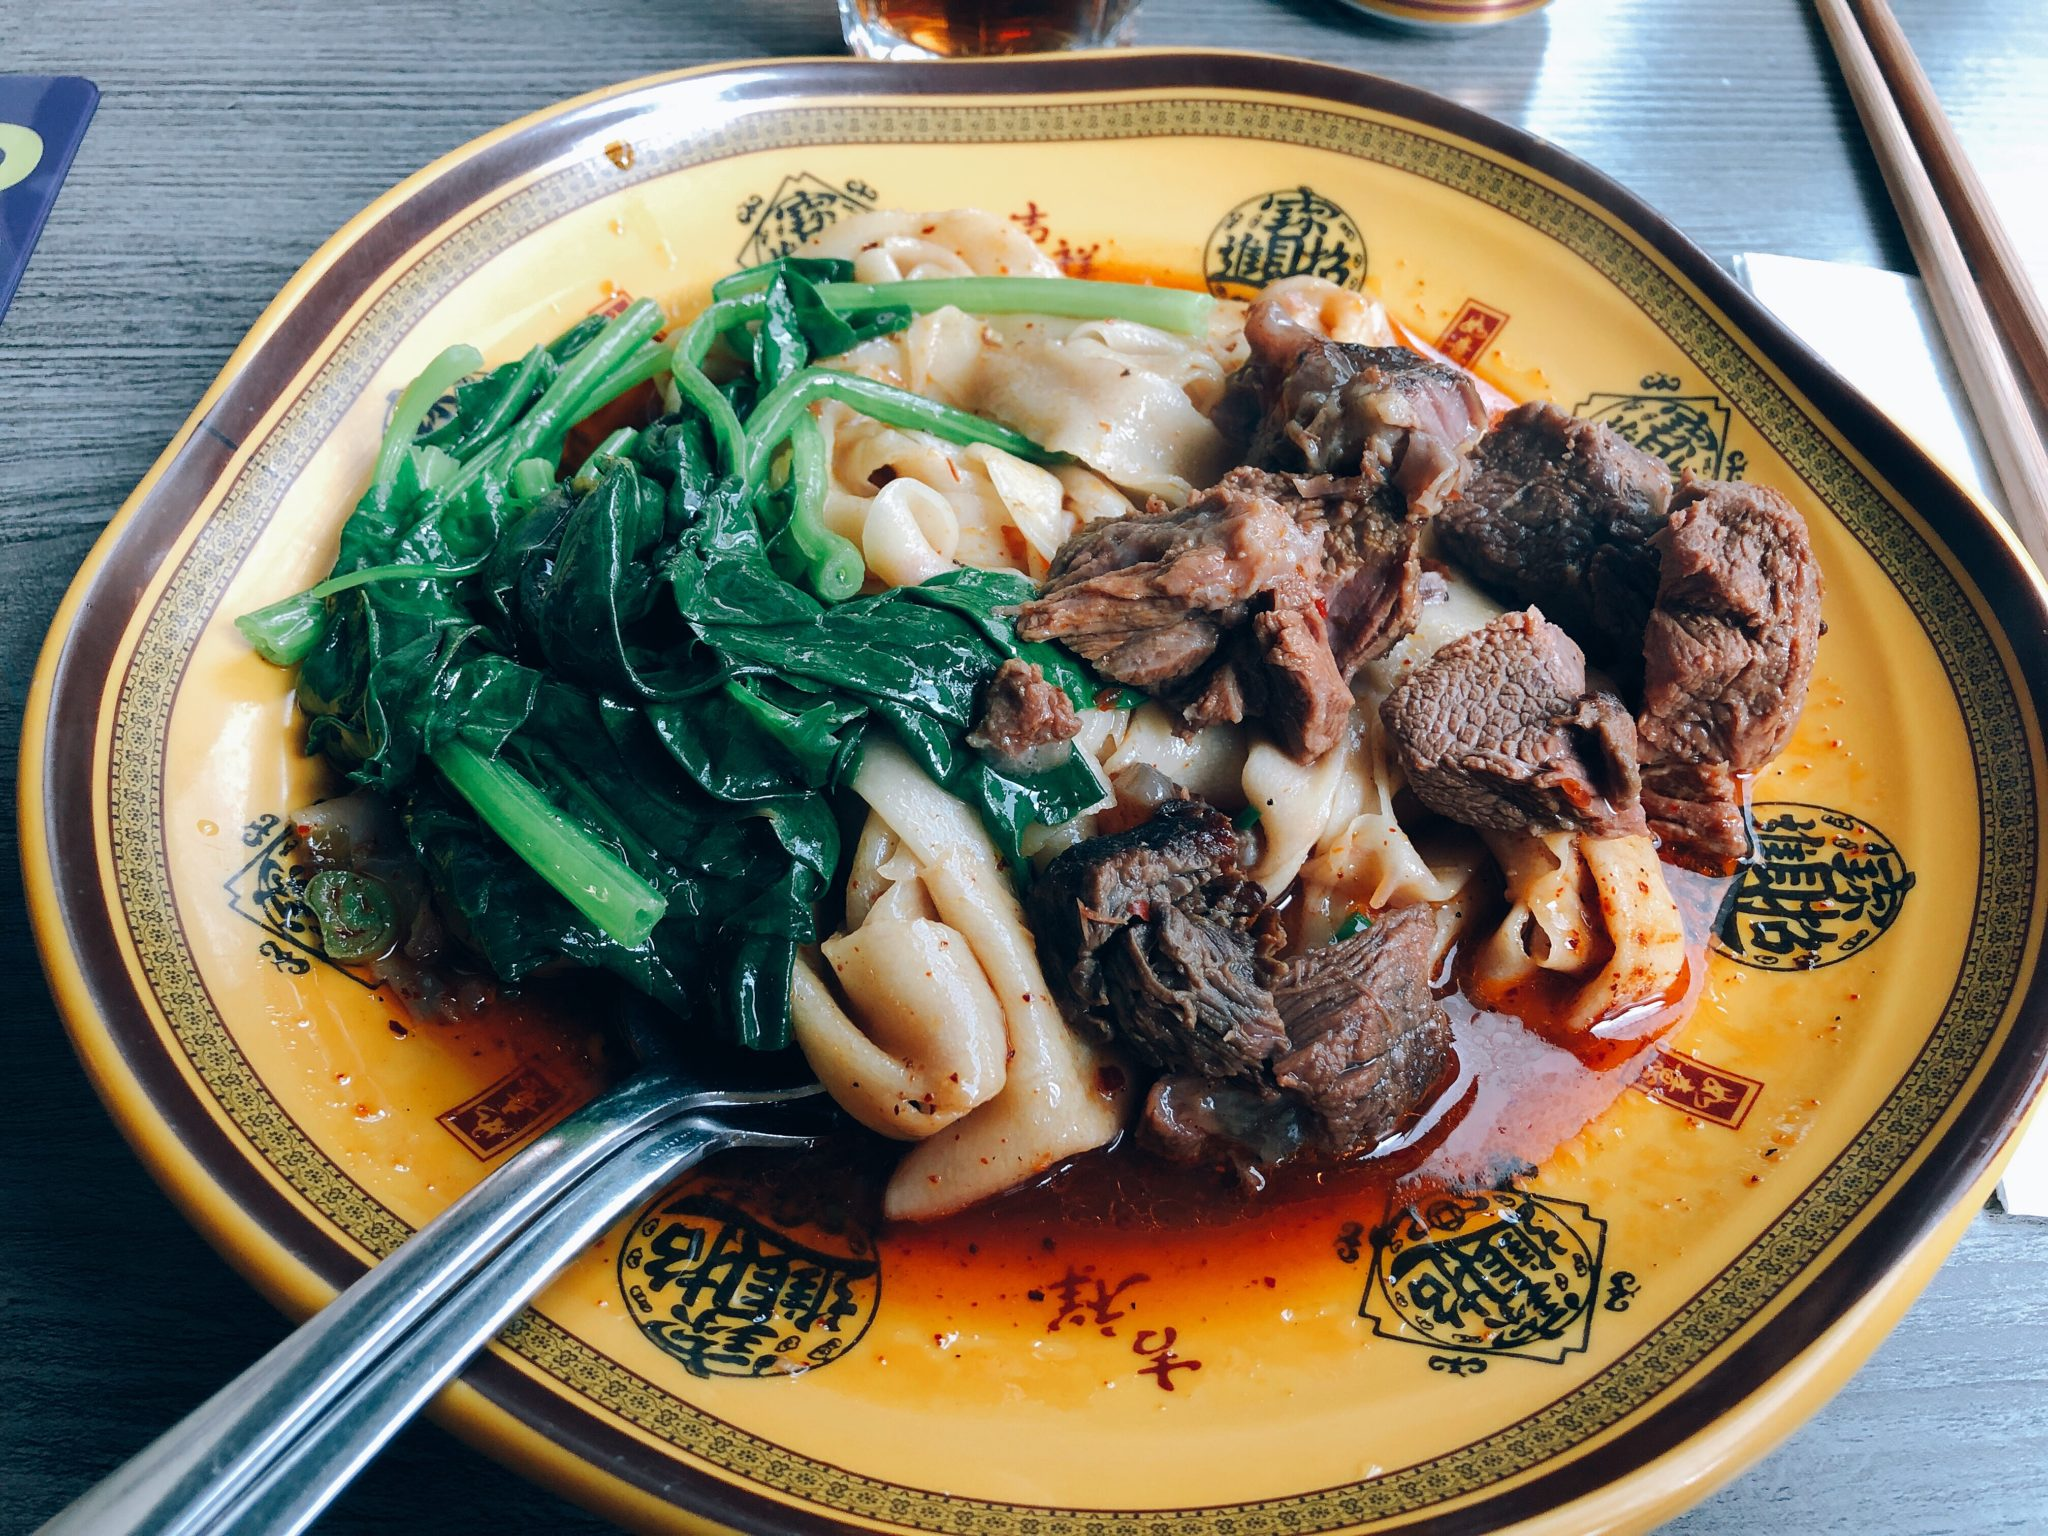 X'ian Biang Biang Review - Slurping spice special sauce